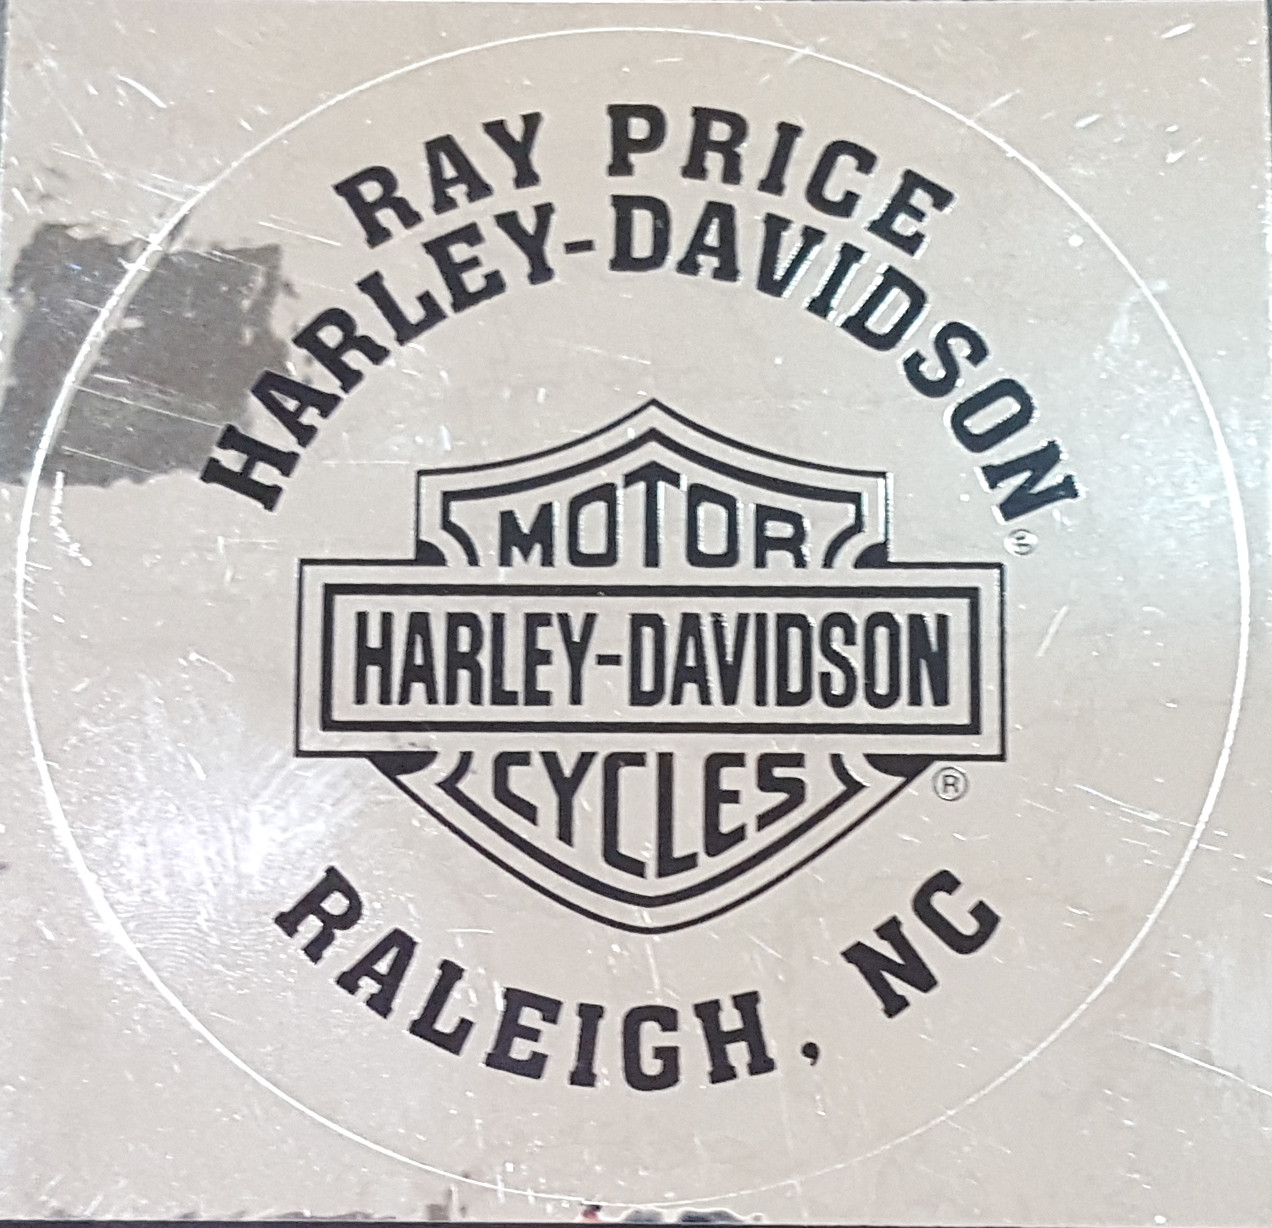 Ray Price H-D Decal